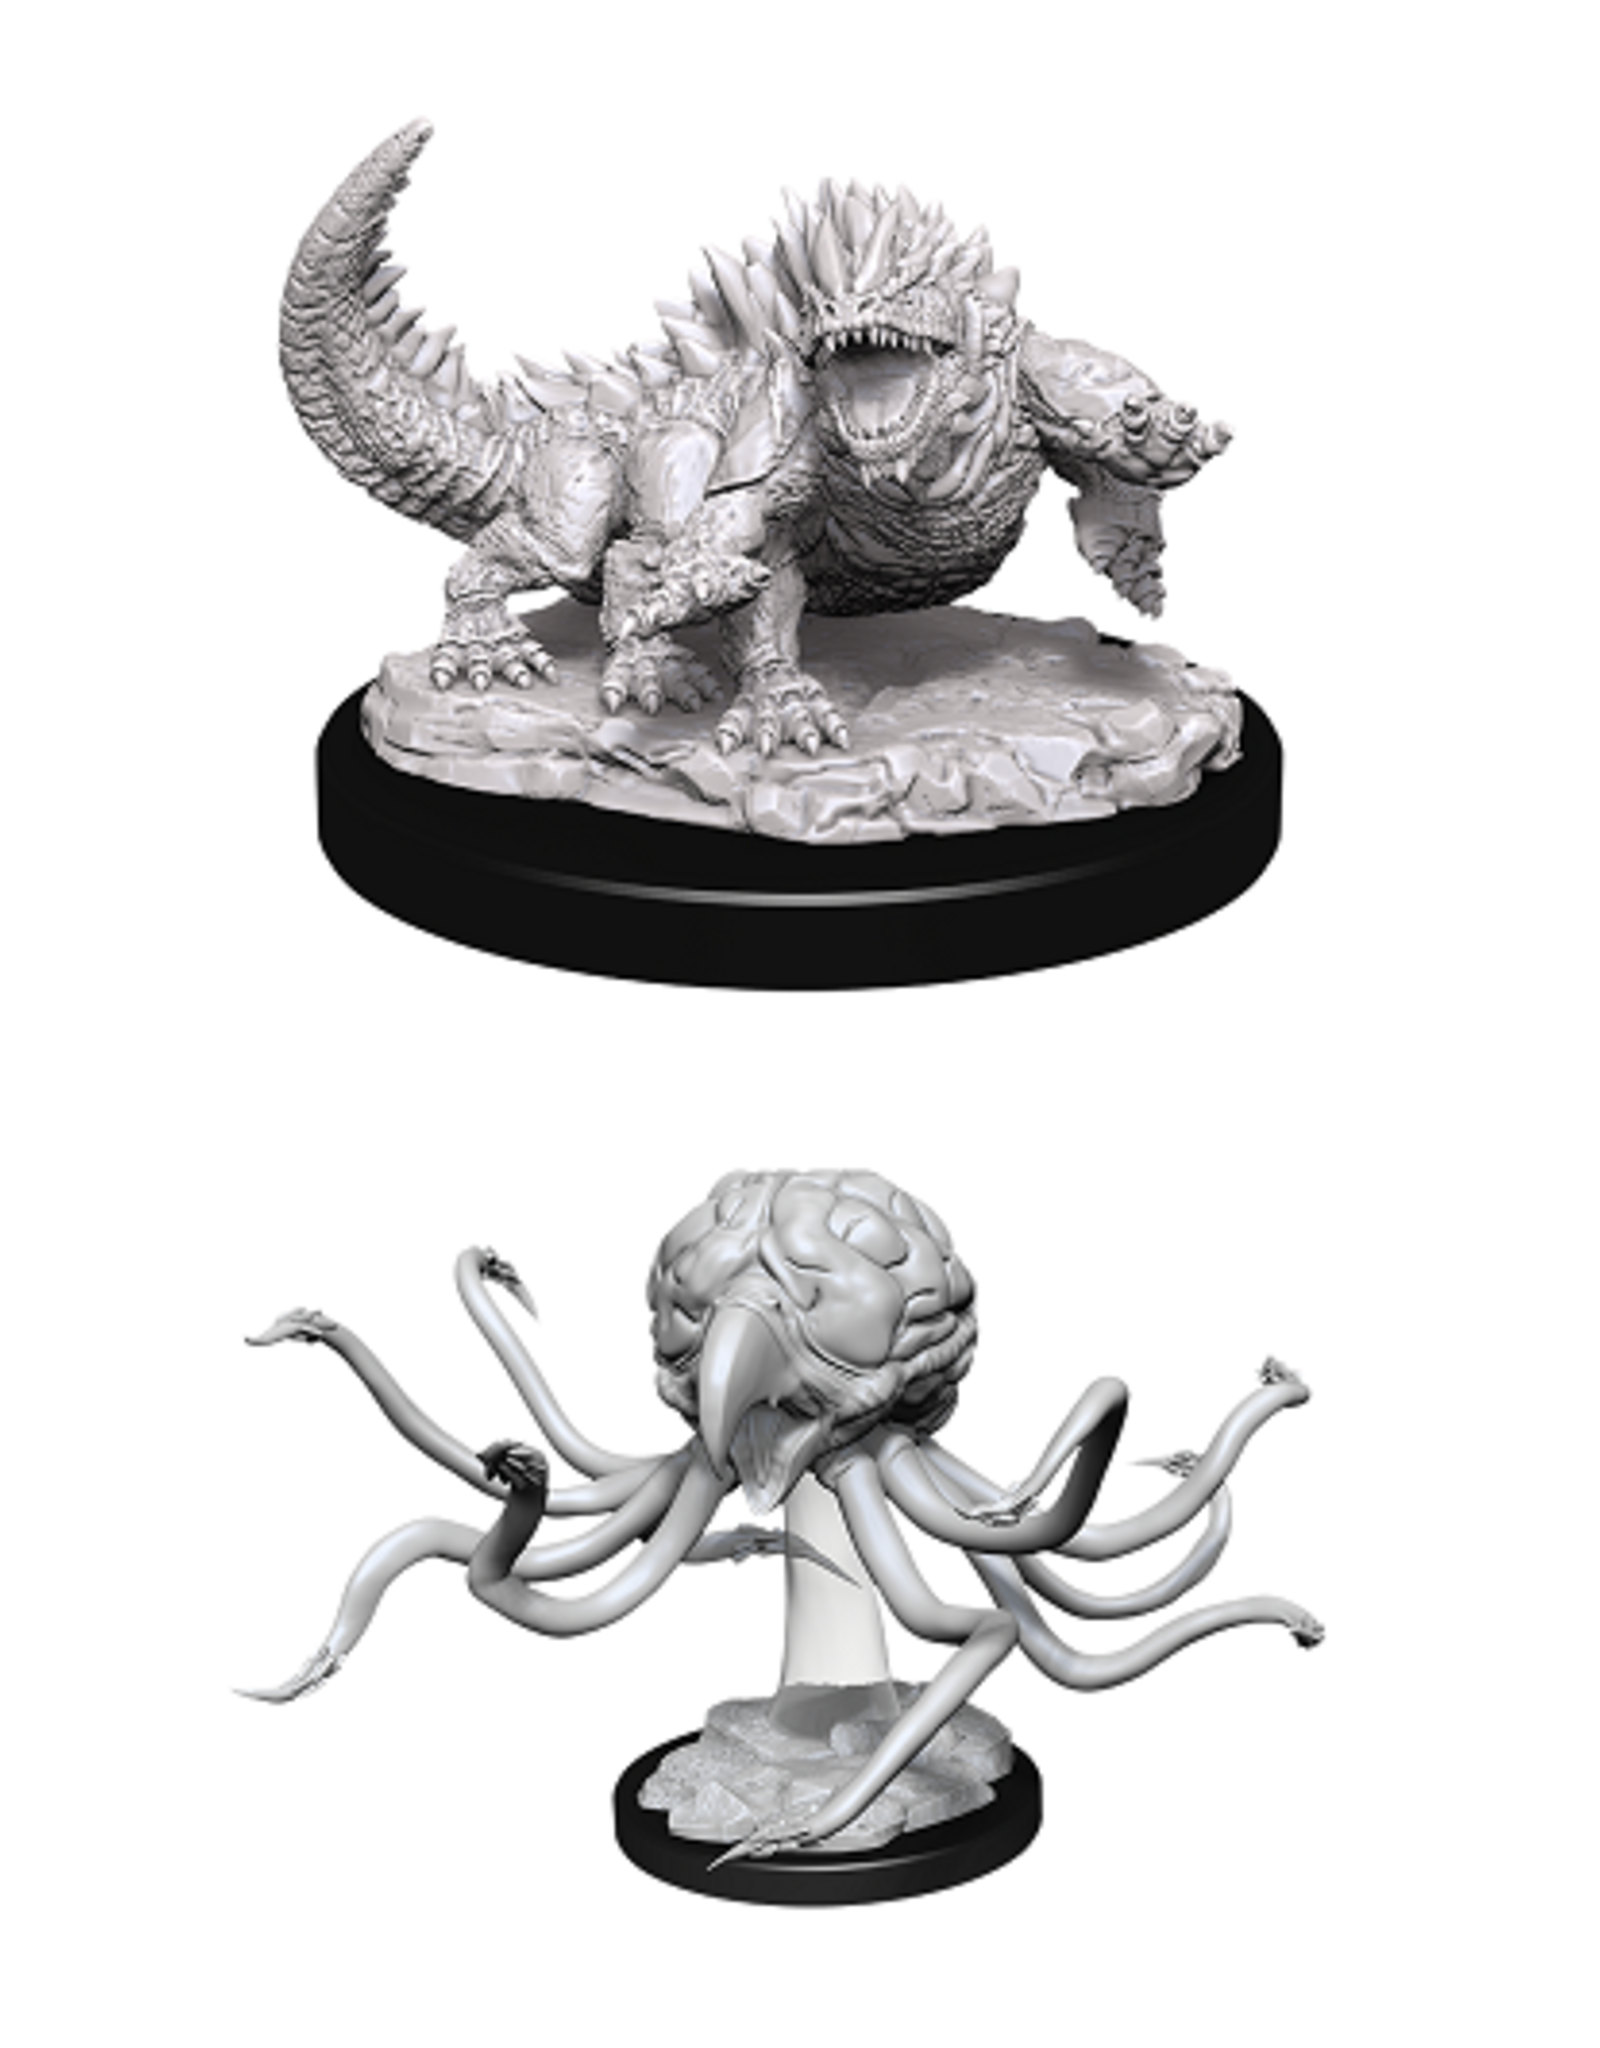 WIZKIDS DND UNPAINTED MINIS: GRELL AND BASILISK